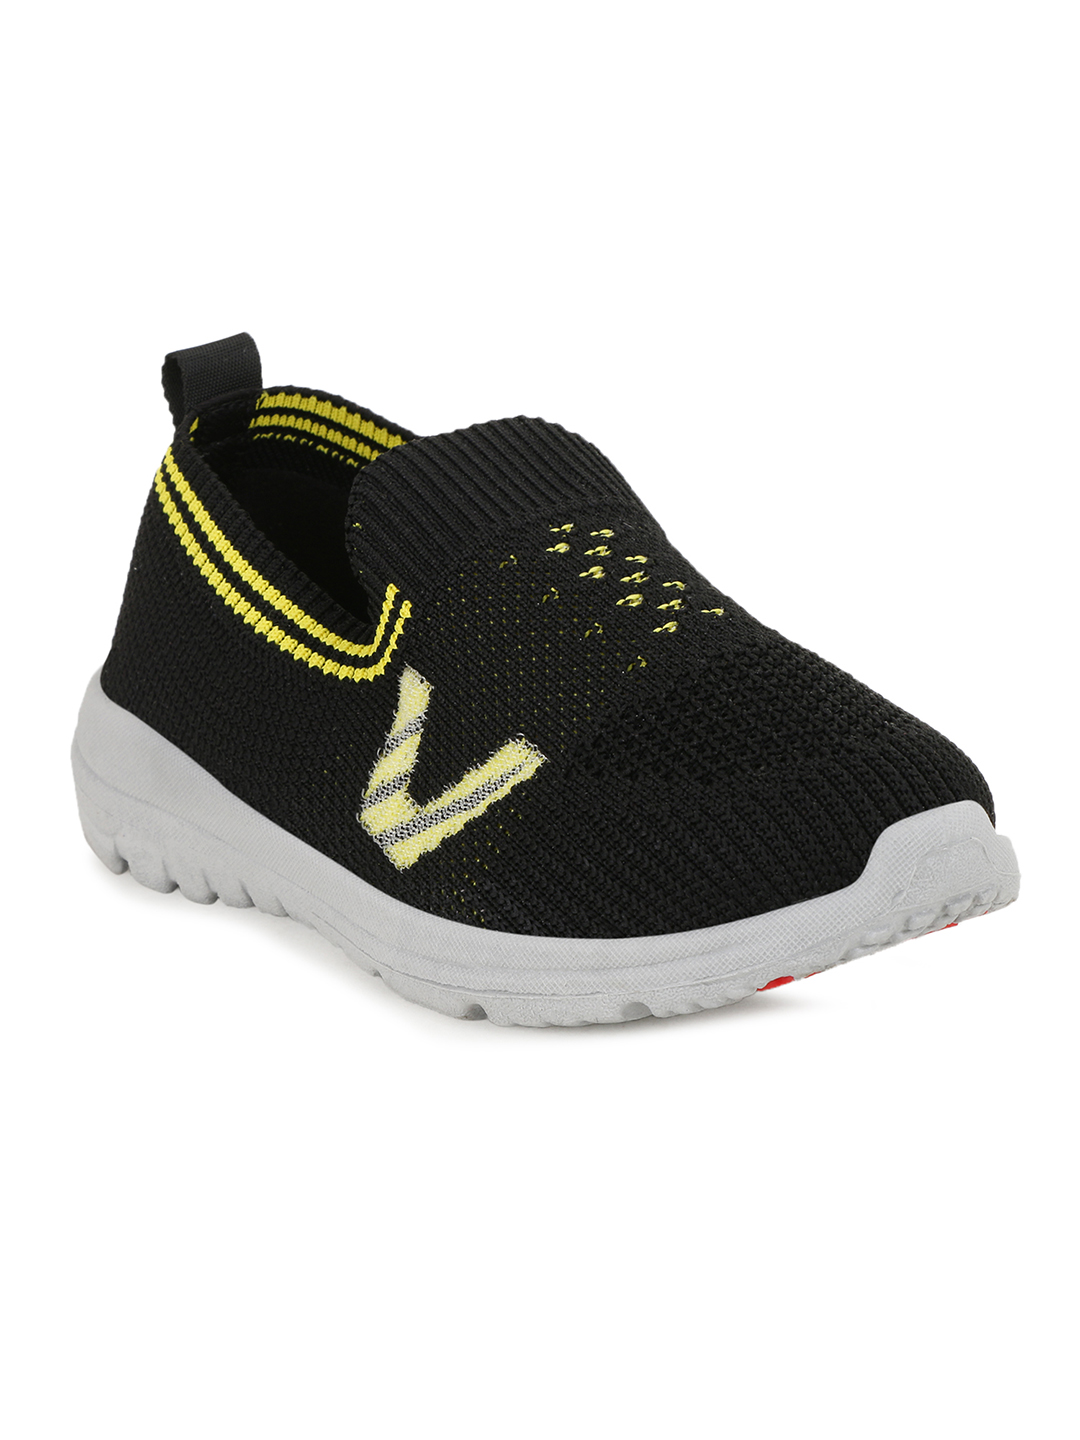 Campus Shoes   Black Running Shoes